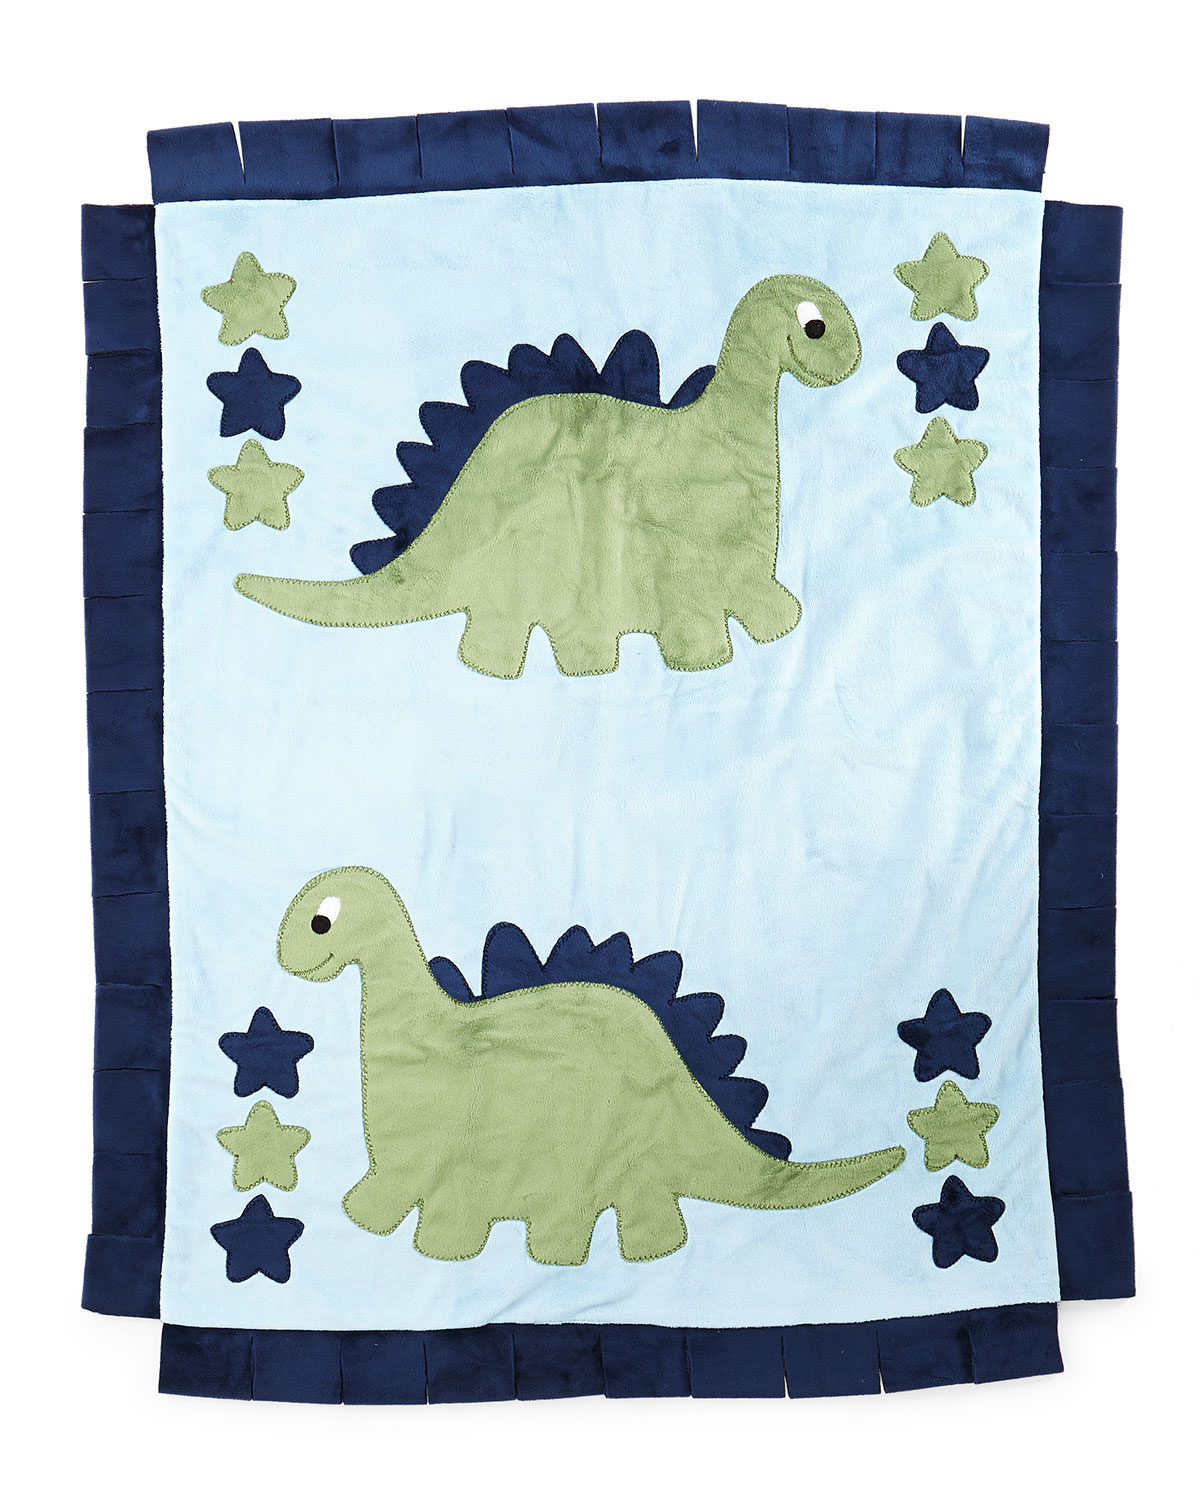 Boogie Baby Plush Dino The Dinosaur Blanket, Blue / green